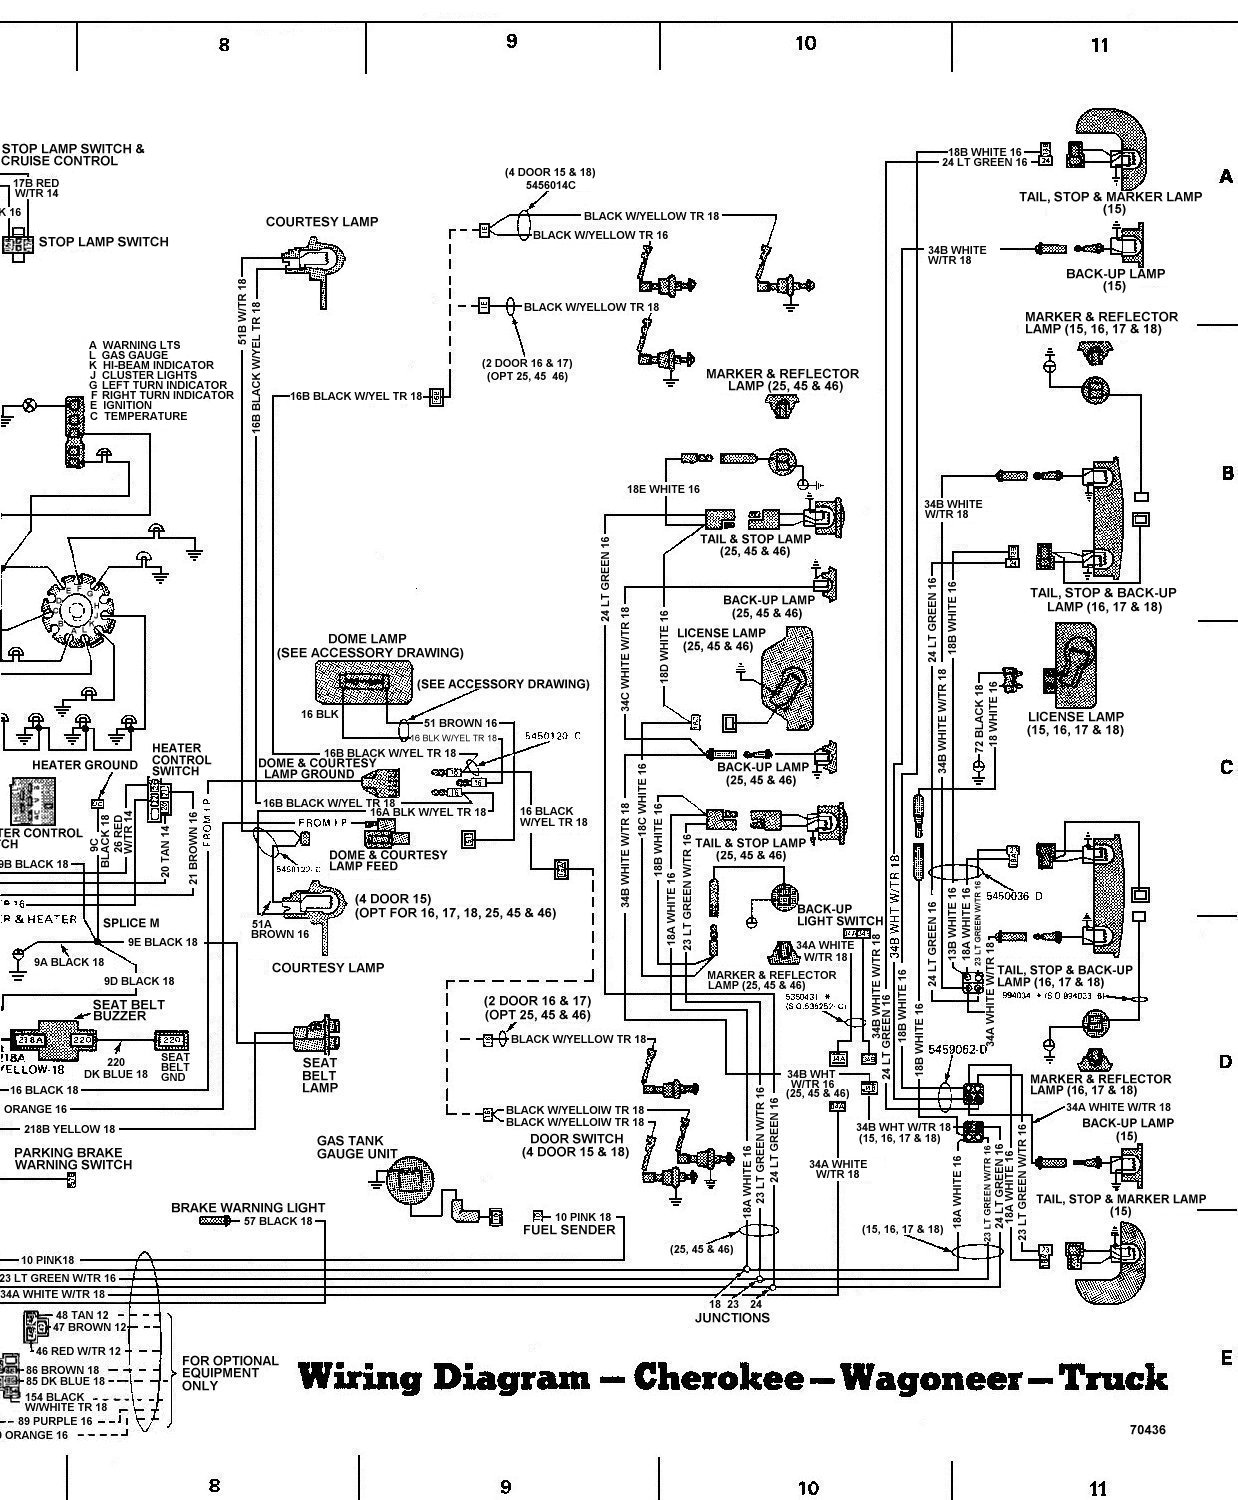 2001 international truck wiring diagrams pdf with Headlight Relay Switch Location 1996 on Toyota Corolla Wiring Diagram 1998 in addition 2000 International 4900 Dt466e Radio Wiring additionally Allison 1000 Transmission Valve Body Parts Diagram furthermore 2015 01 01 archive additionally 2usv4 Hello Cat 3406e Wont Start Noticed Not Hear.